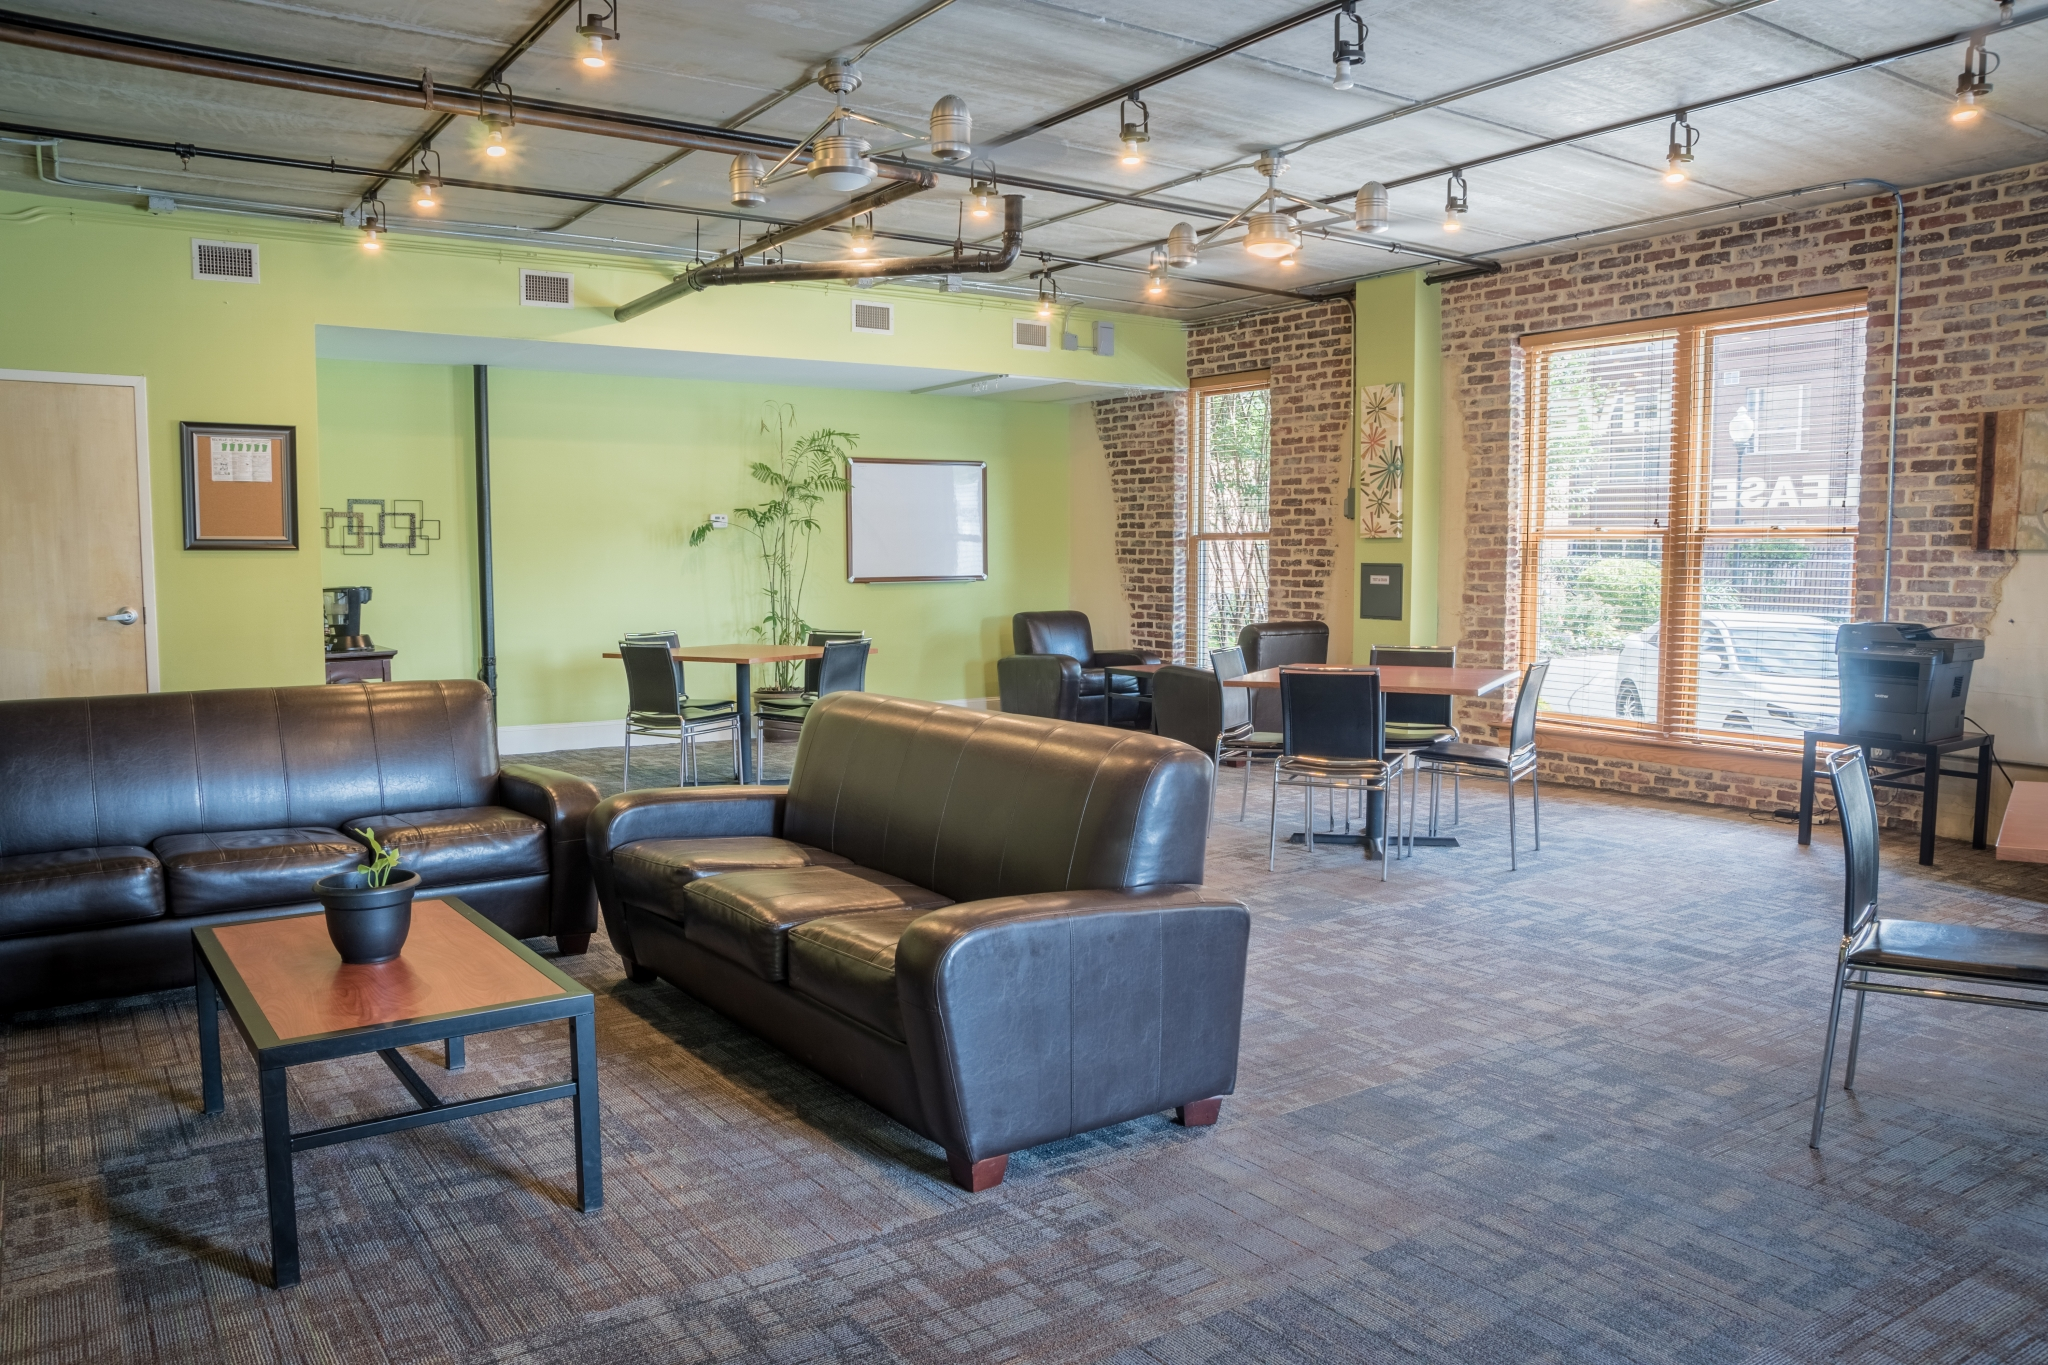 The warehouse apartments in chapel hill nc 27516 - The apartment in the warehouse ...